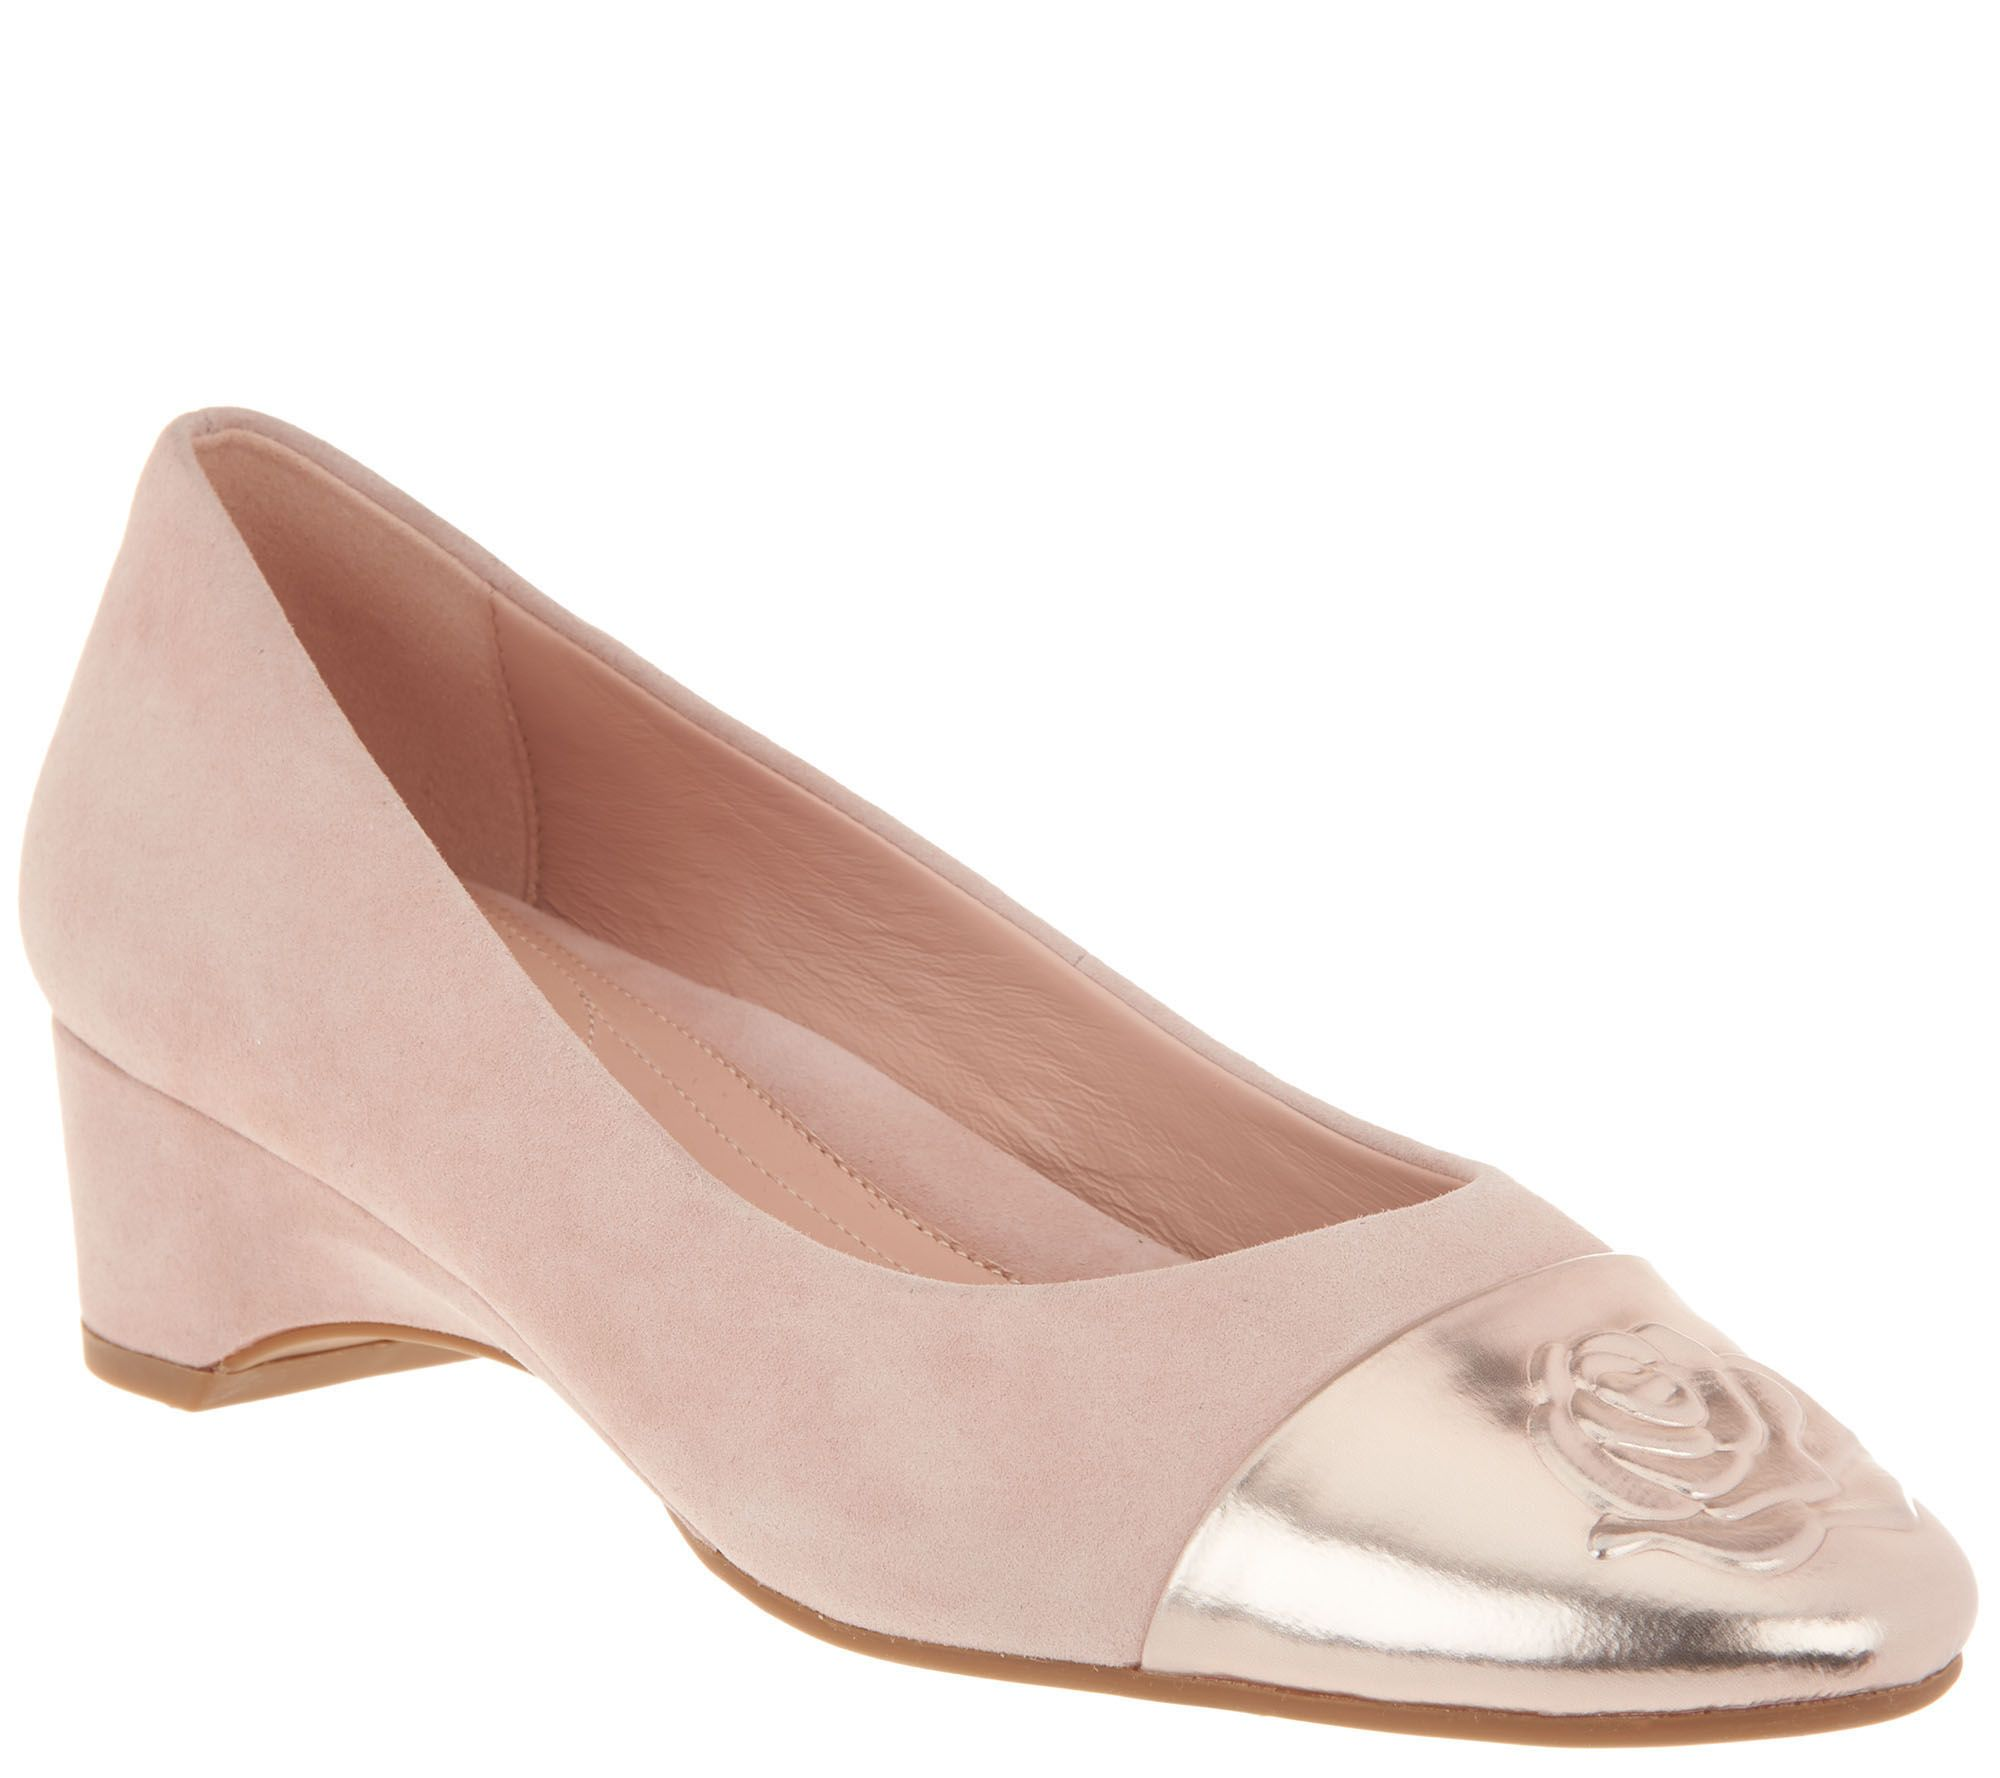 9ea83be549 Taryn Rose Suede Wedge Pumps - Babe - Page 1 — QVC.com